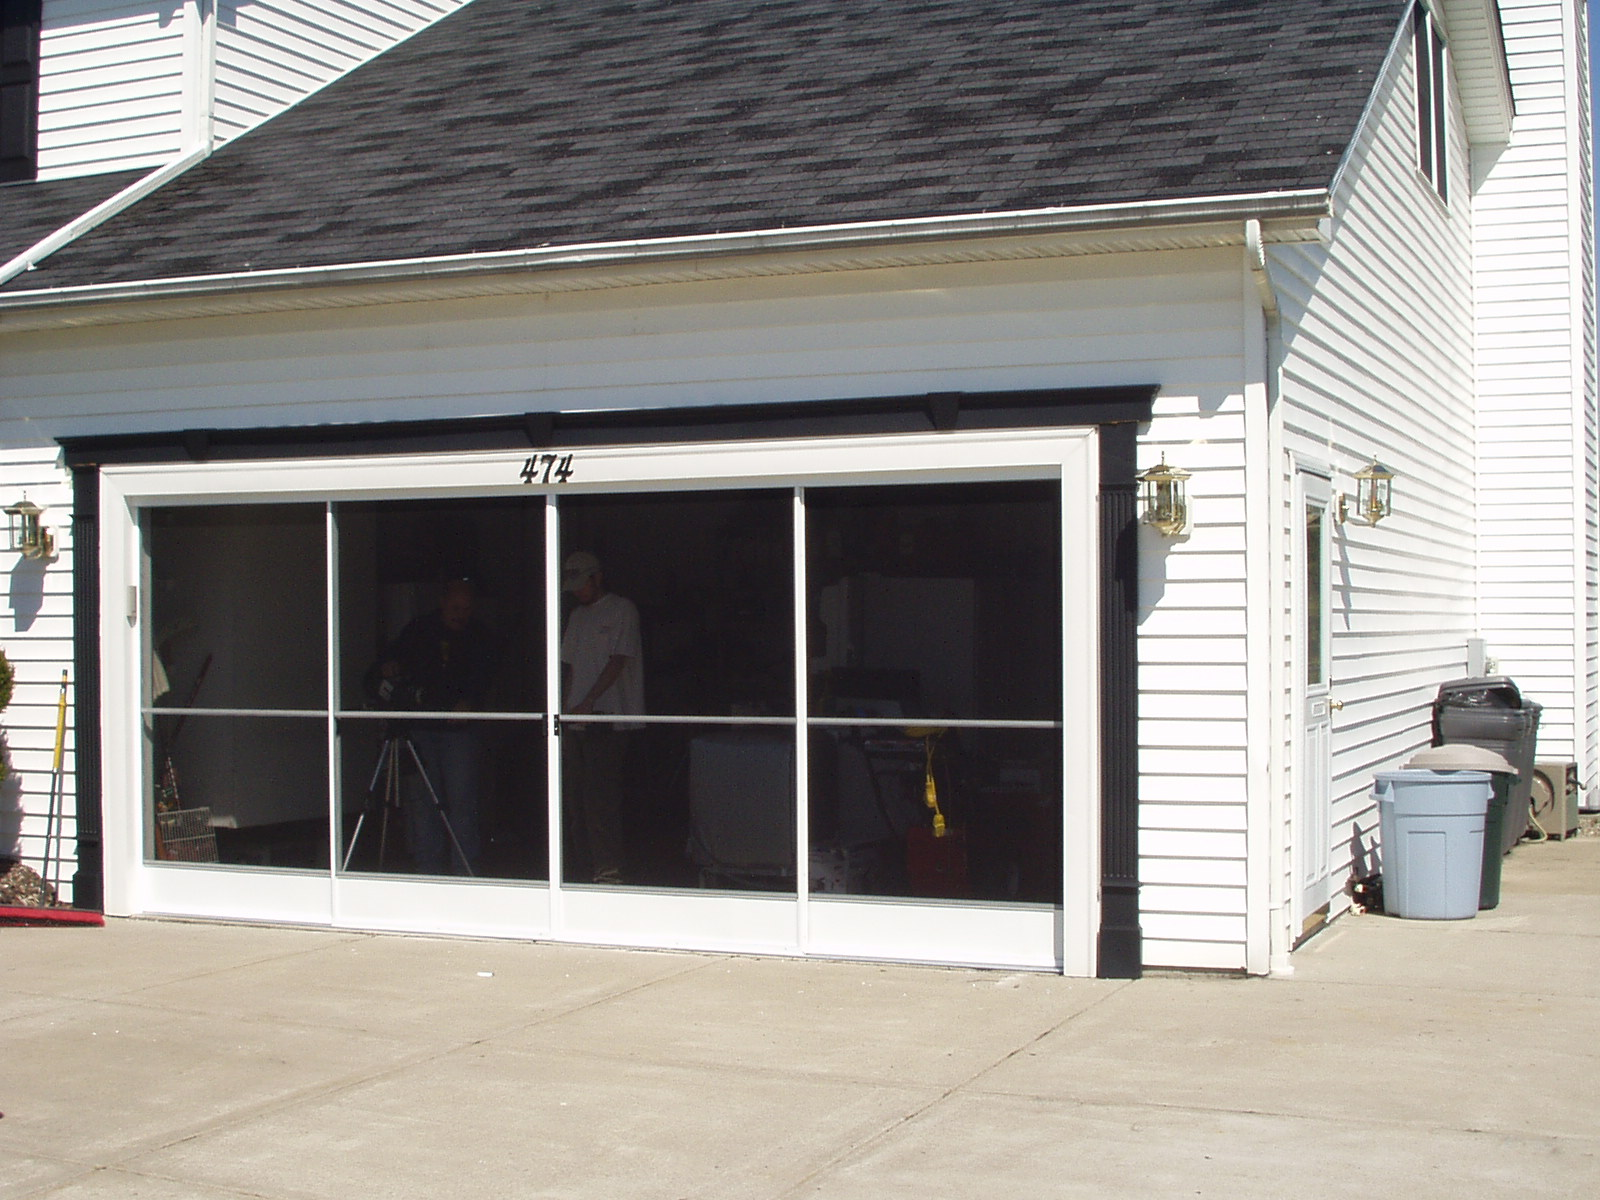 Garage screen door patio enclosure installation gallery for Garage screen door rollers